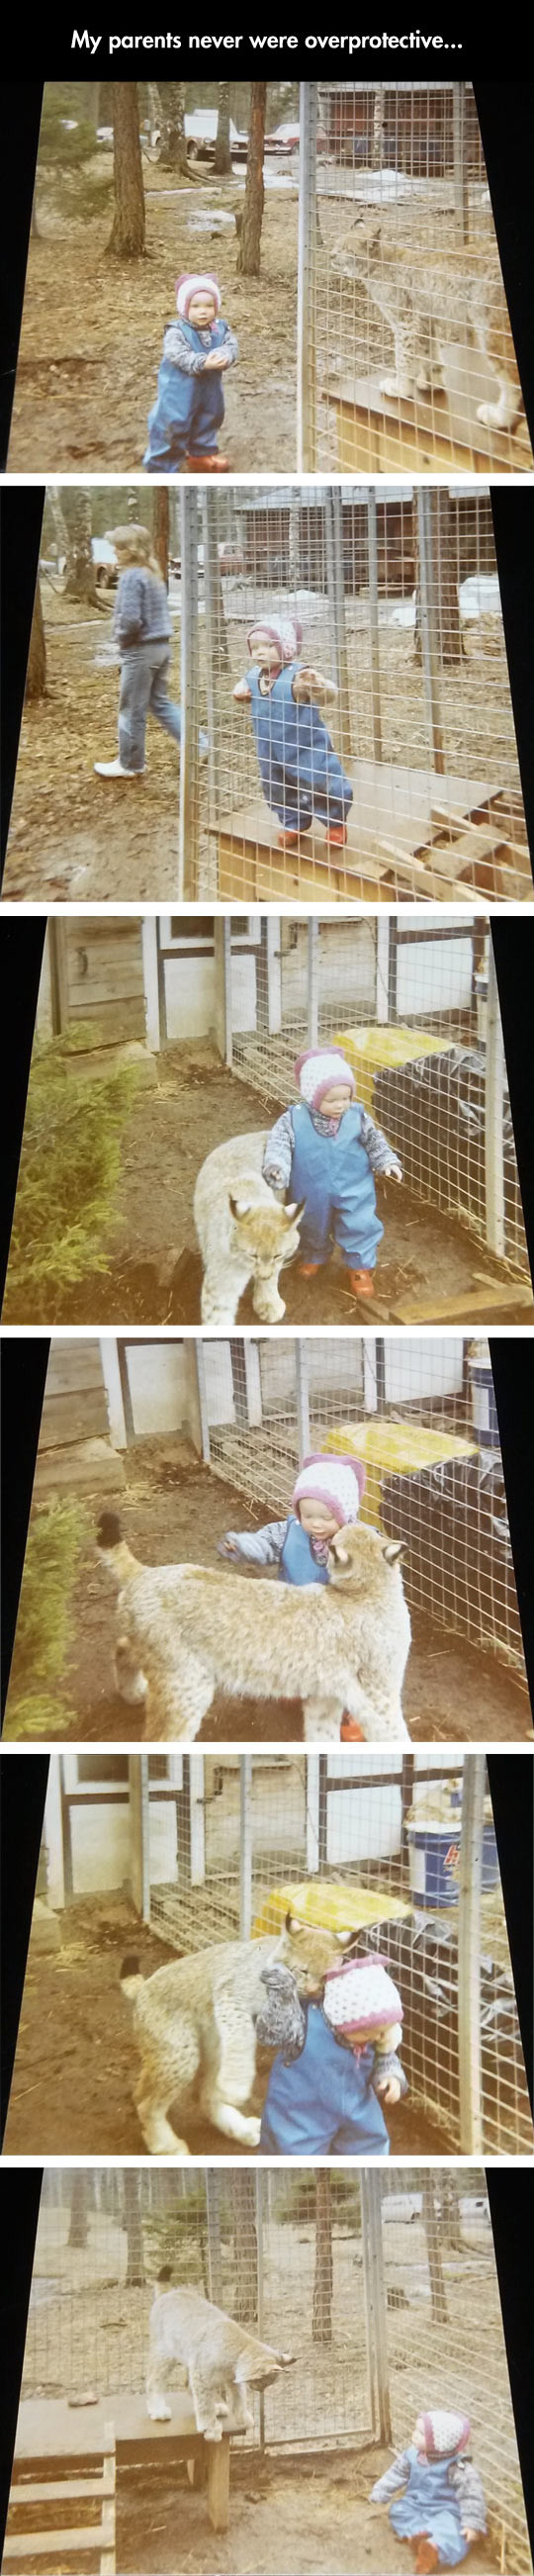 funny-baby-playing-lynx-cage